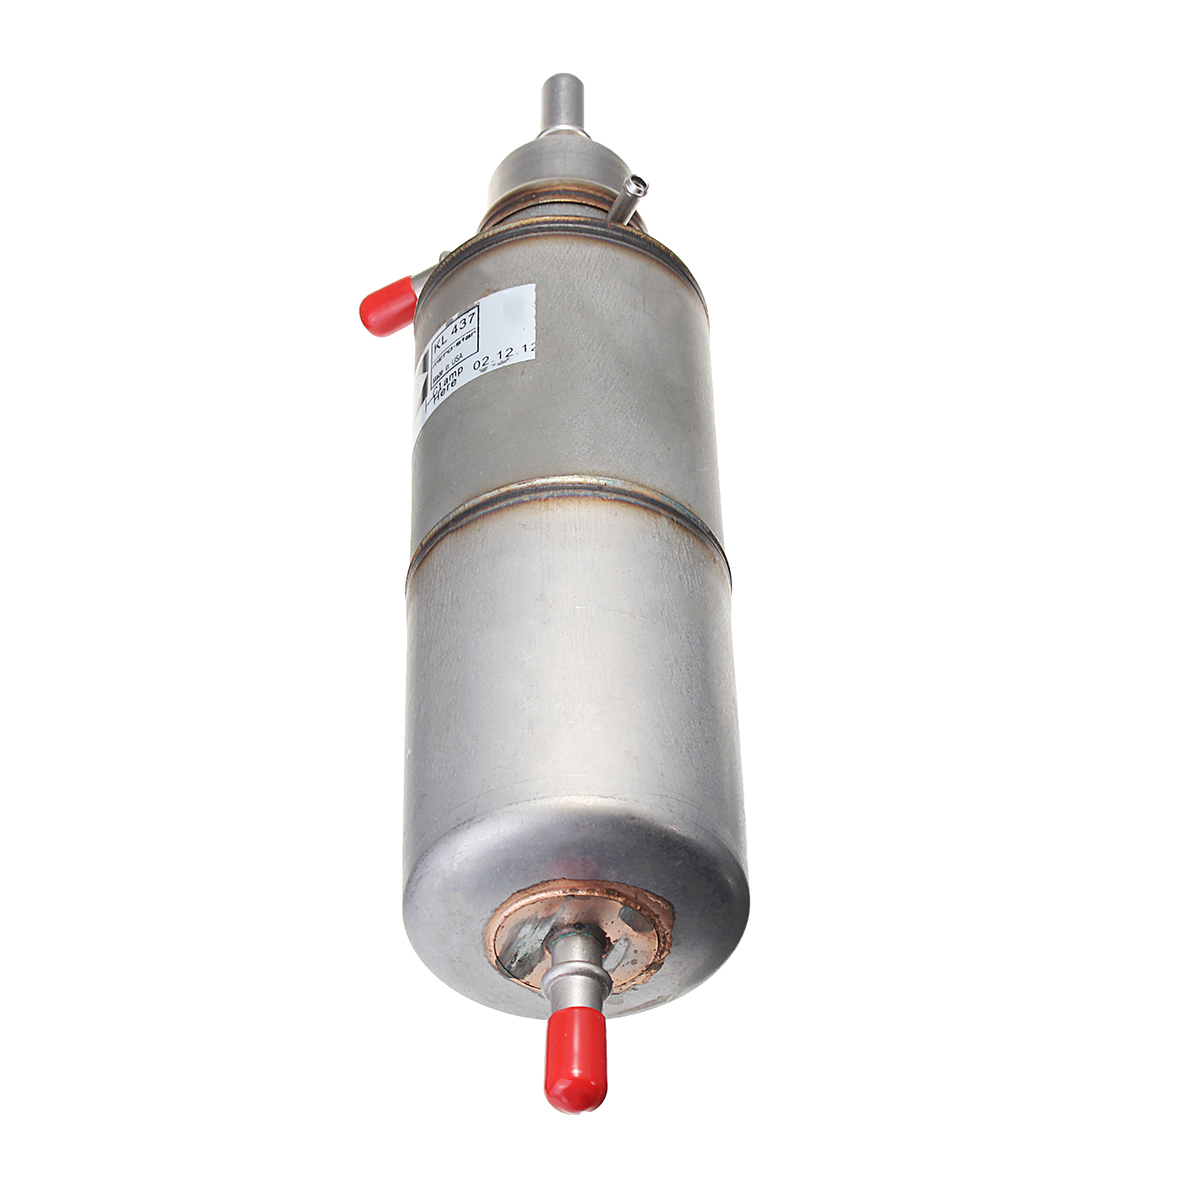 New Oil Fuel Filter For Mercedes Model Ml55 Amg Ml320 Ml430 Benz 1998 Location 1 X